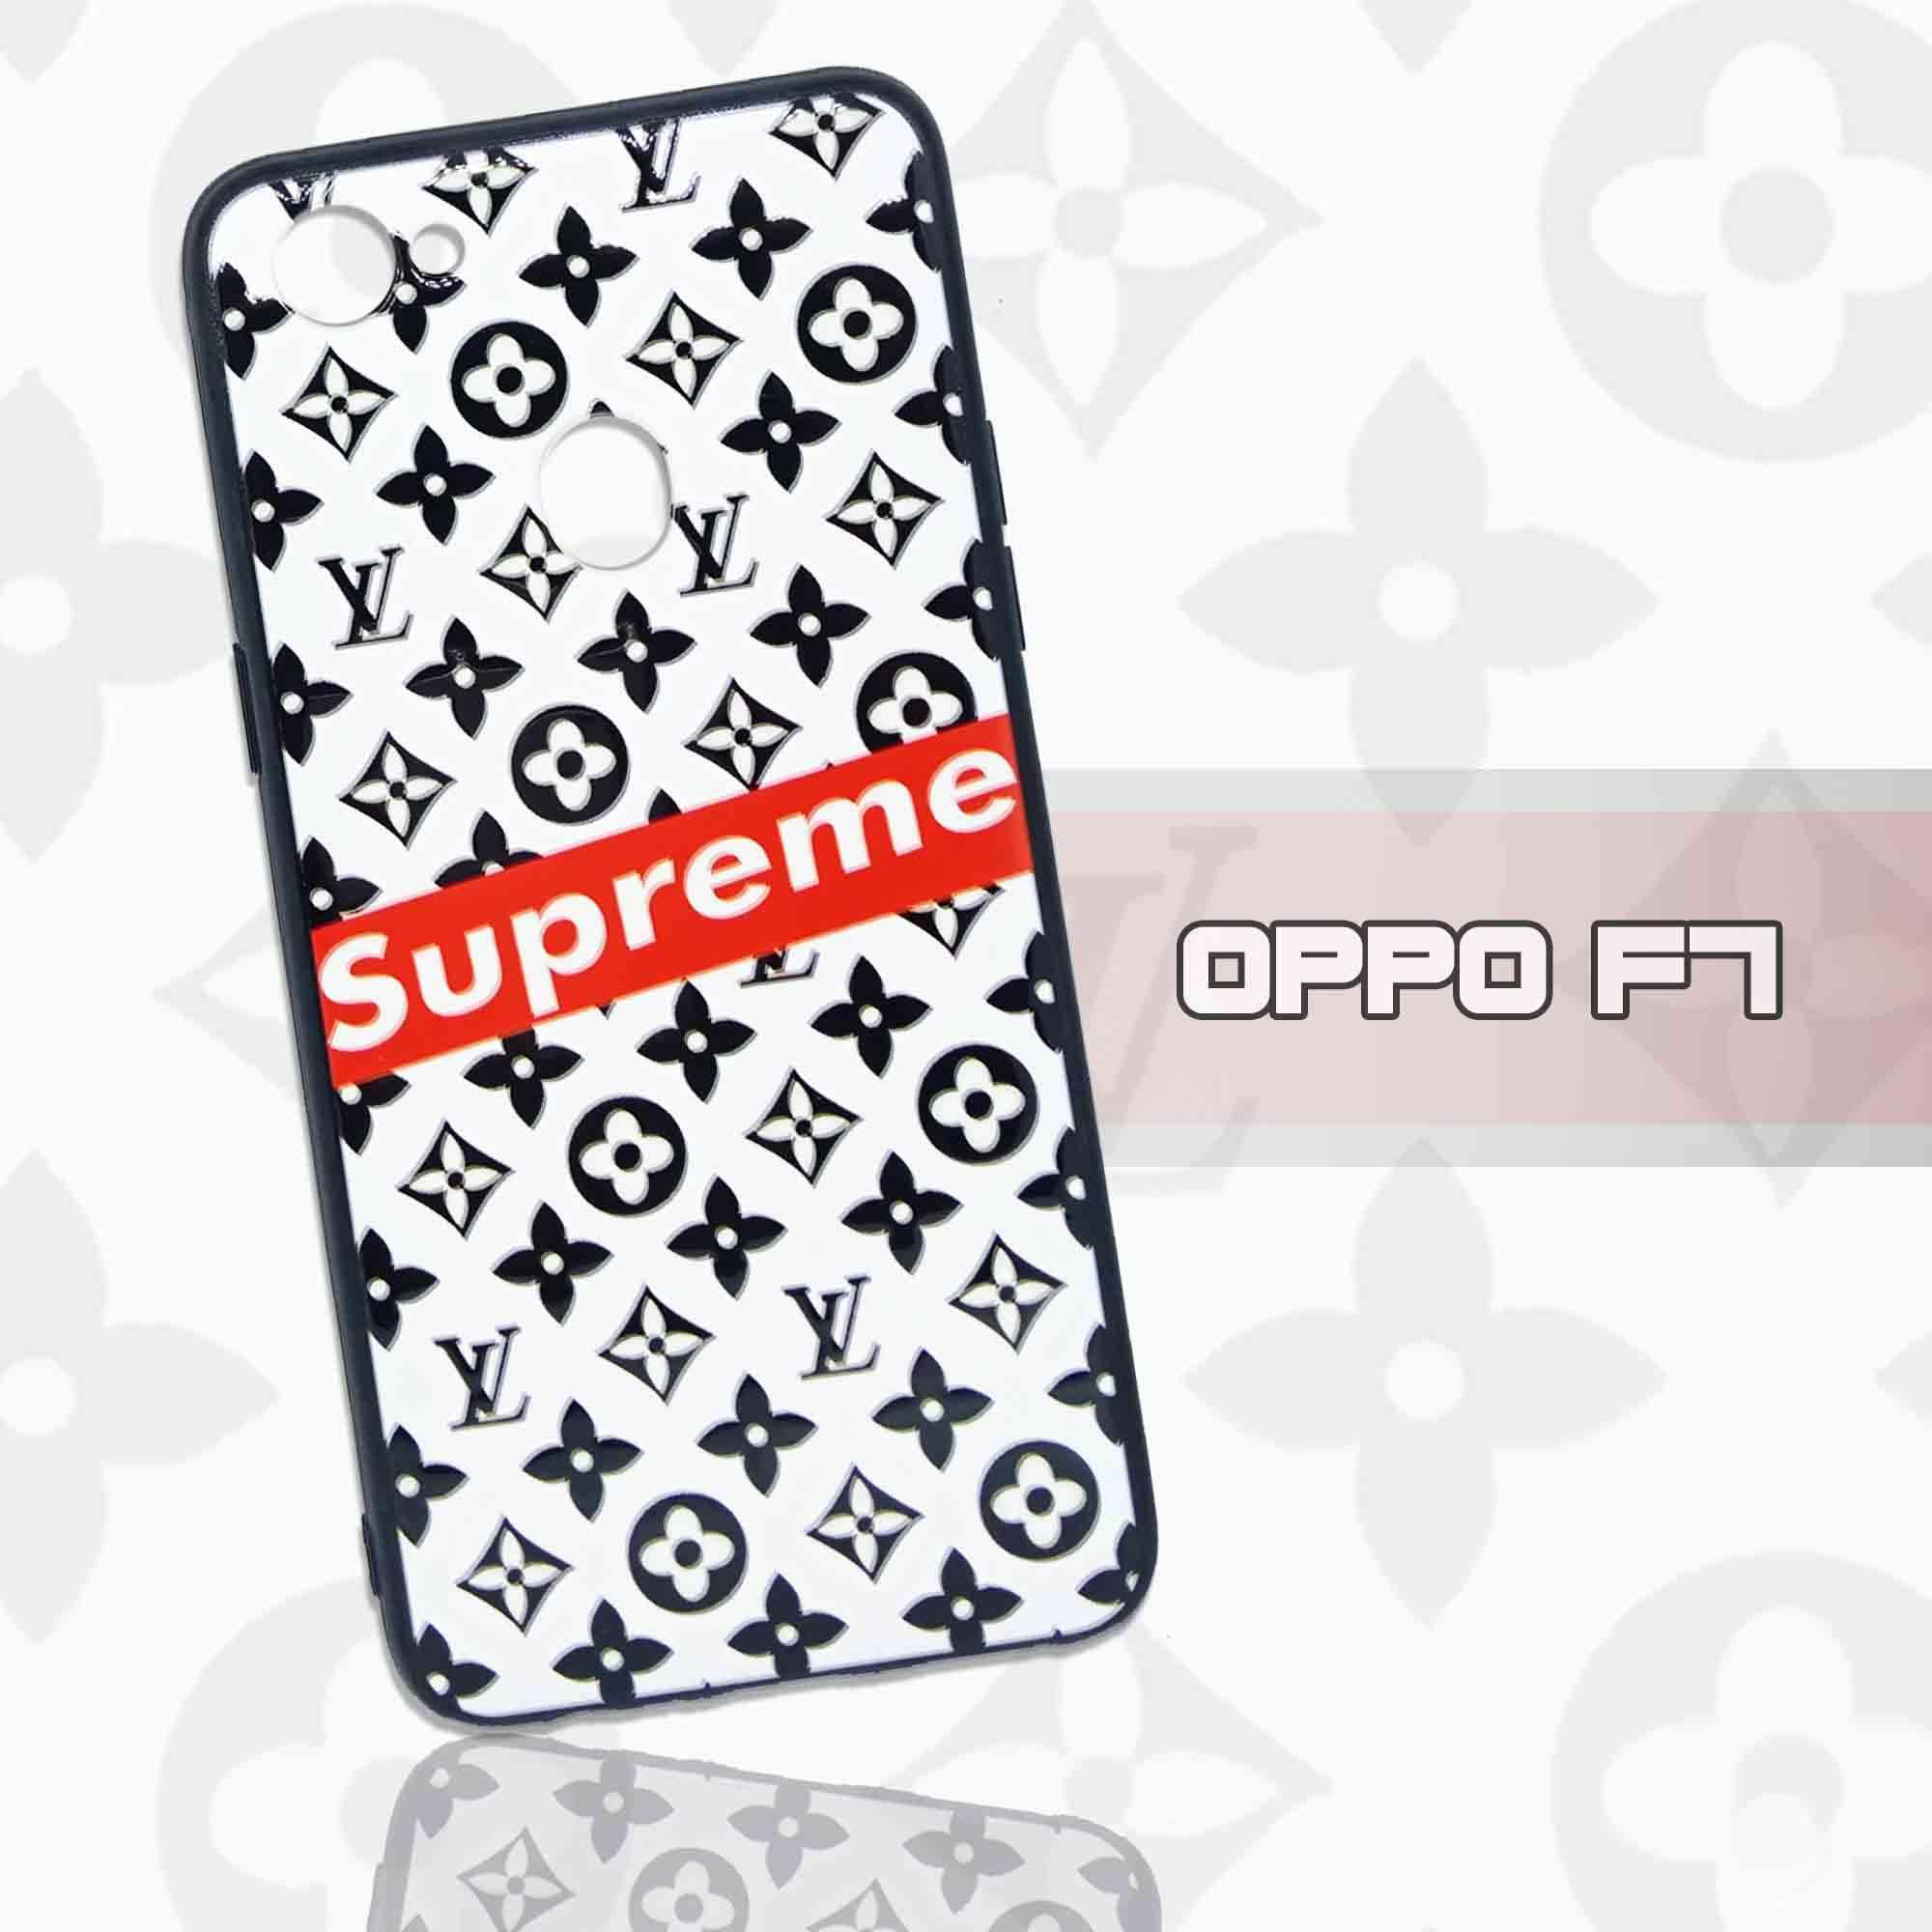 Fitur Peonia Transparent Acrylic Hybrid Case For Oppo F7 6 23 Inch Electroplating Ultrathin Samsung J7 Pro 2017 Intristore Fashion